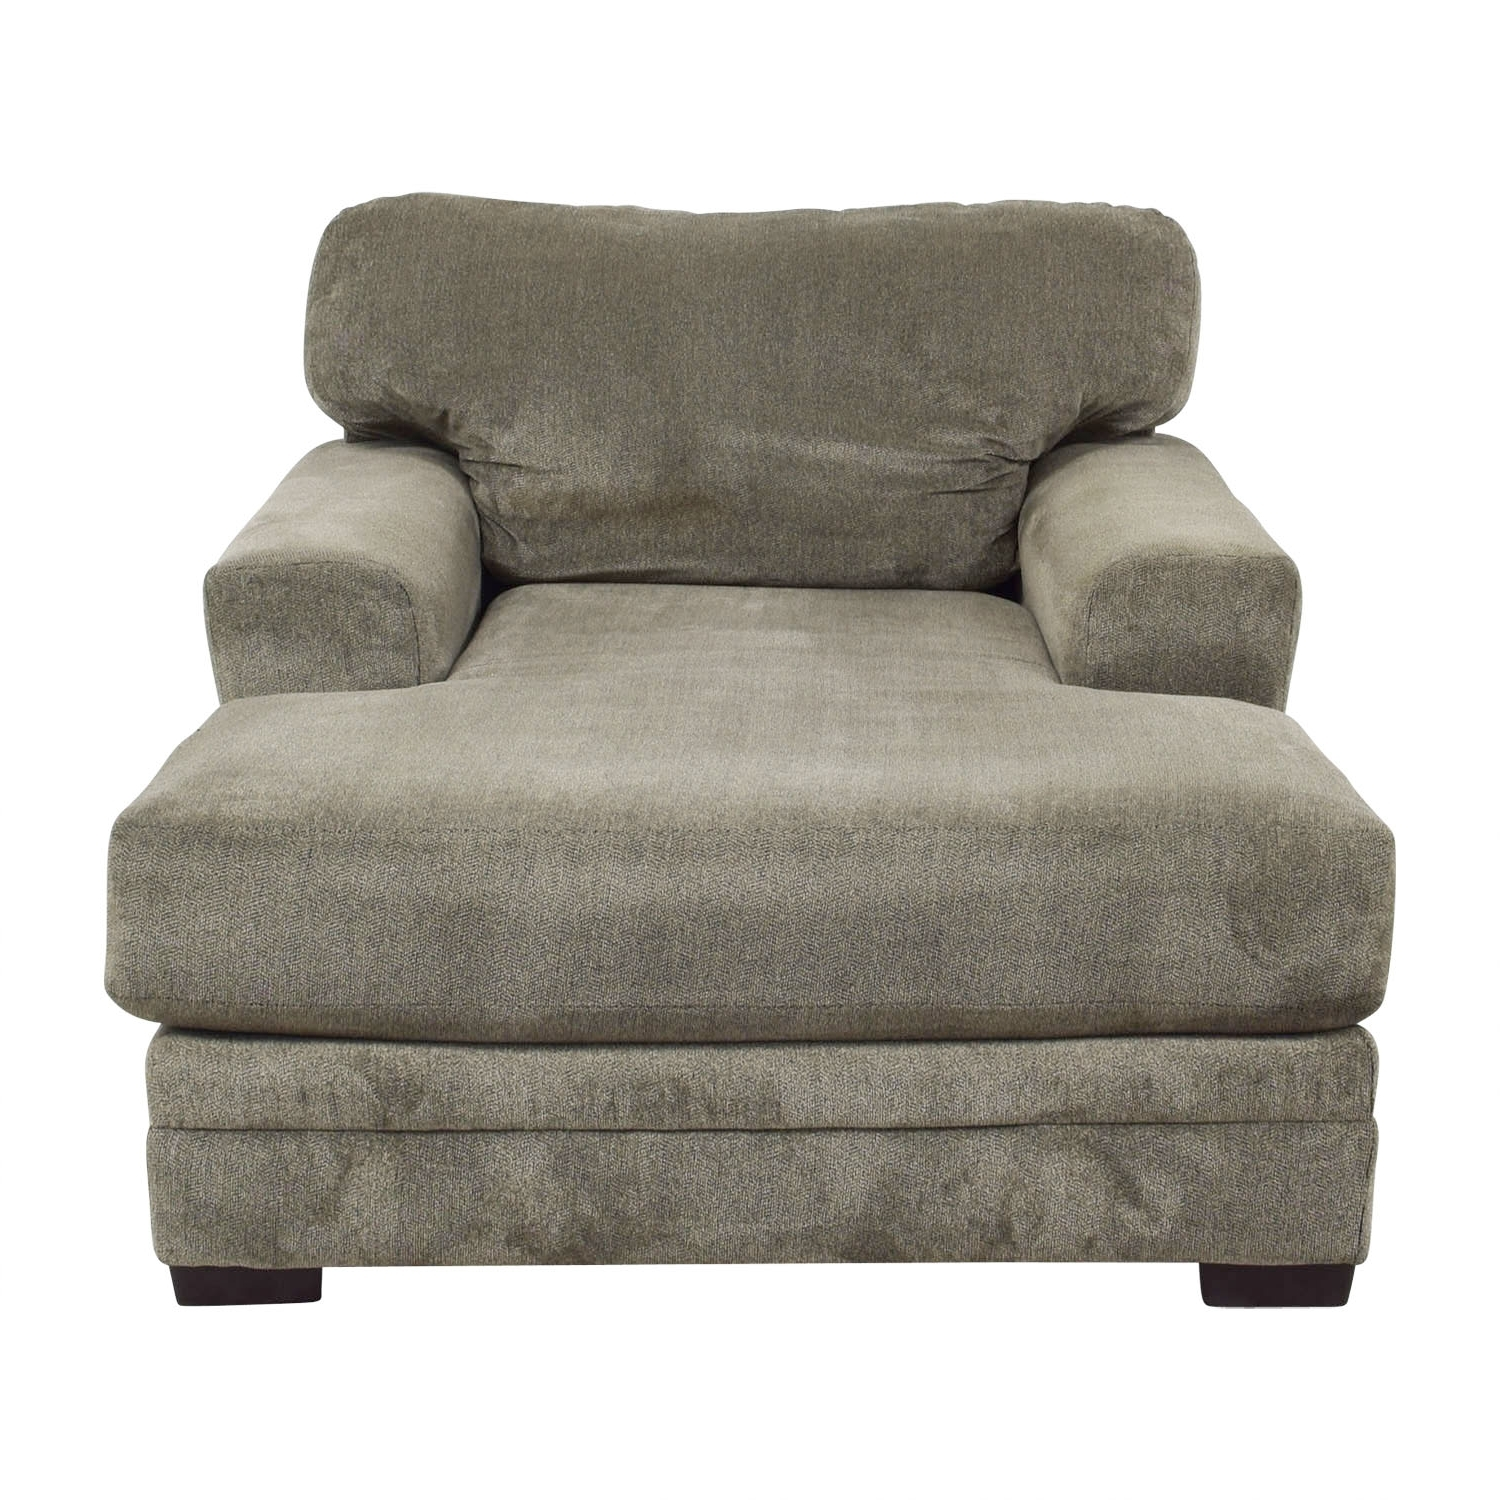 [%81% Off – Bob's Furniture Bob's Furniture Grey Chaise Lounge / Sofas Within Most Recently Released Grey Chaises|Grey Chaises Regarding Newest 81% Off – Bob's Furniture Bob's Furniture Grey Chaise Lounge / Sofas|Recent Grey Chaises With 81% Off – Bob's Furniture Bob's Furniture Grey Chaise Lounge / Sofas|Current 81% Off – Bob's Furniture Bob's Furniture Grey Chaise Lounge / Sofas Inside Grey Chaises%] (View 4 of 15)